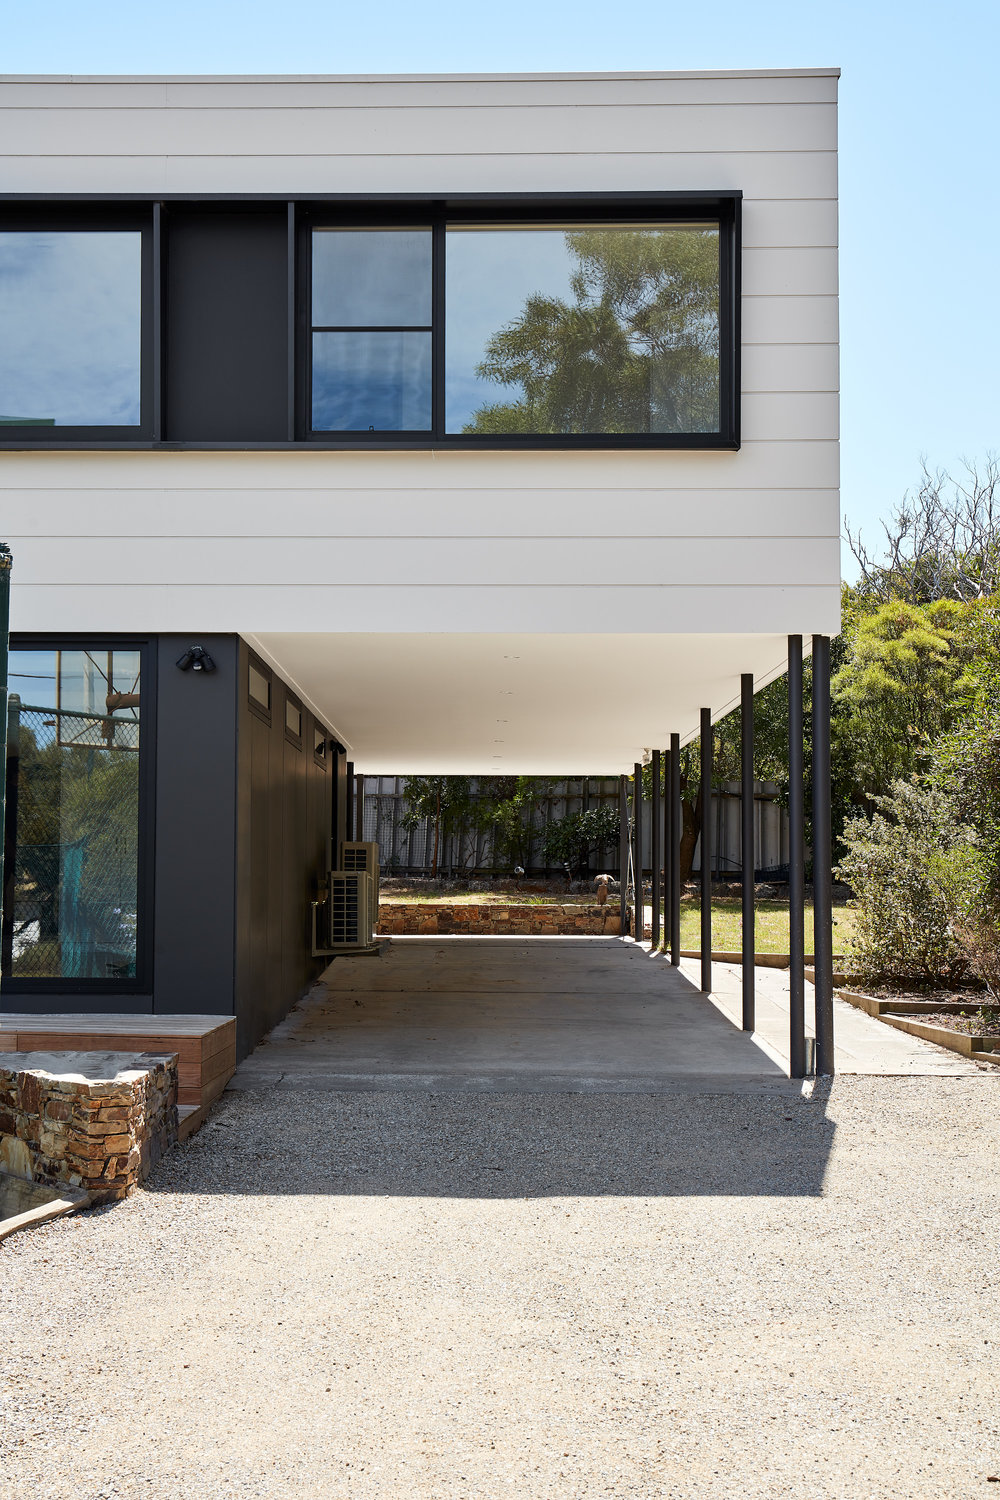 nathan-k-davis-architecture-architectural-photography-interior-exterior-residential-surfcoast-anglesea-house-3